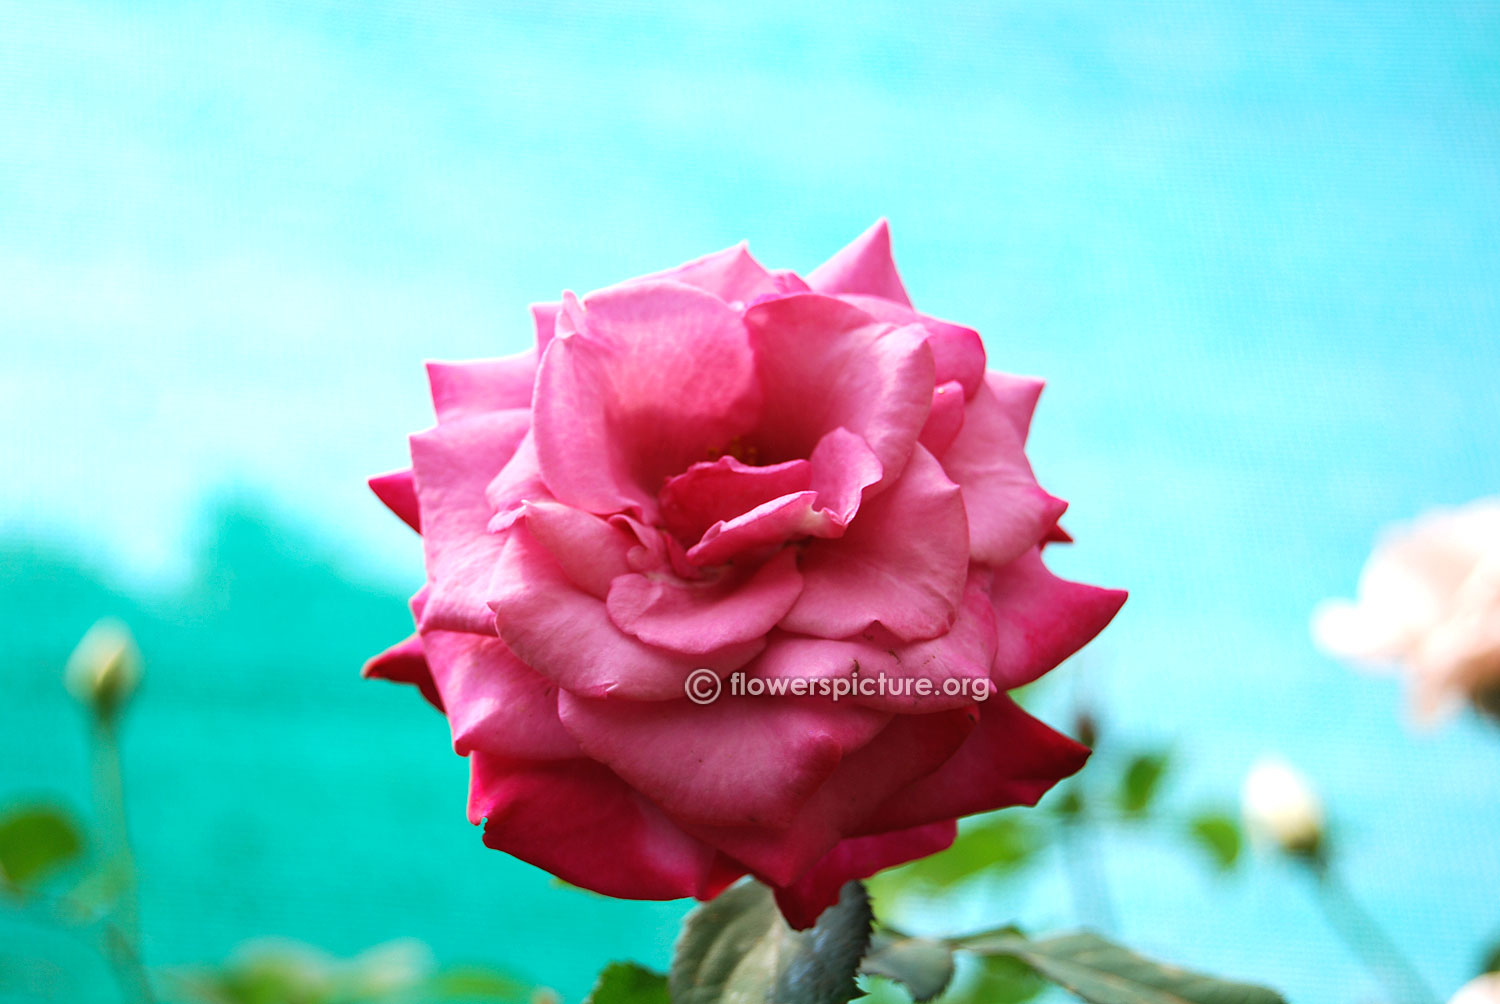 Flower Pictures List - A to Z Flowers, Plants with Names & Details